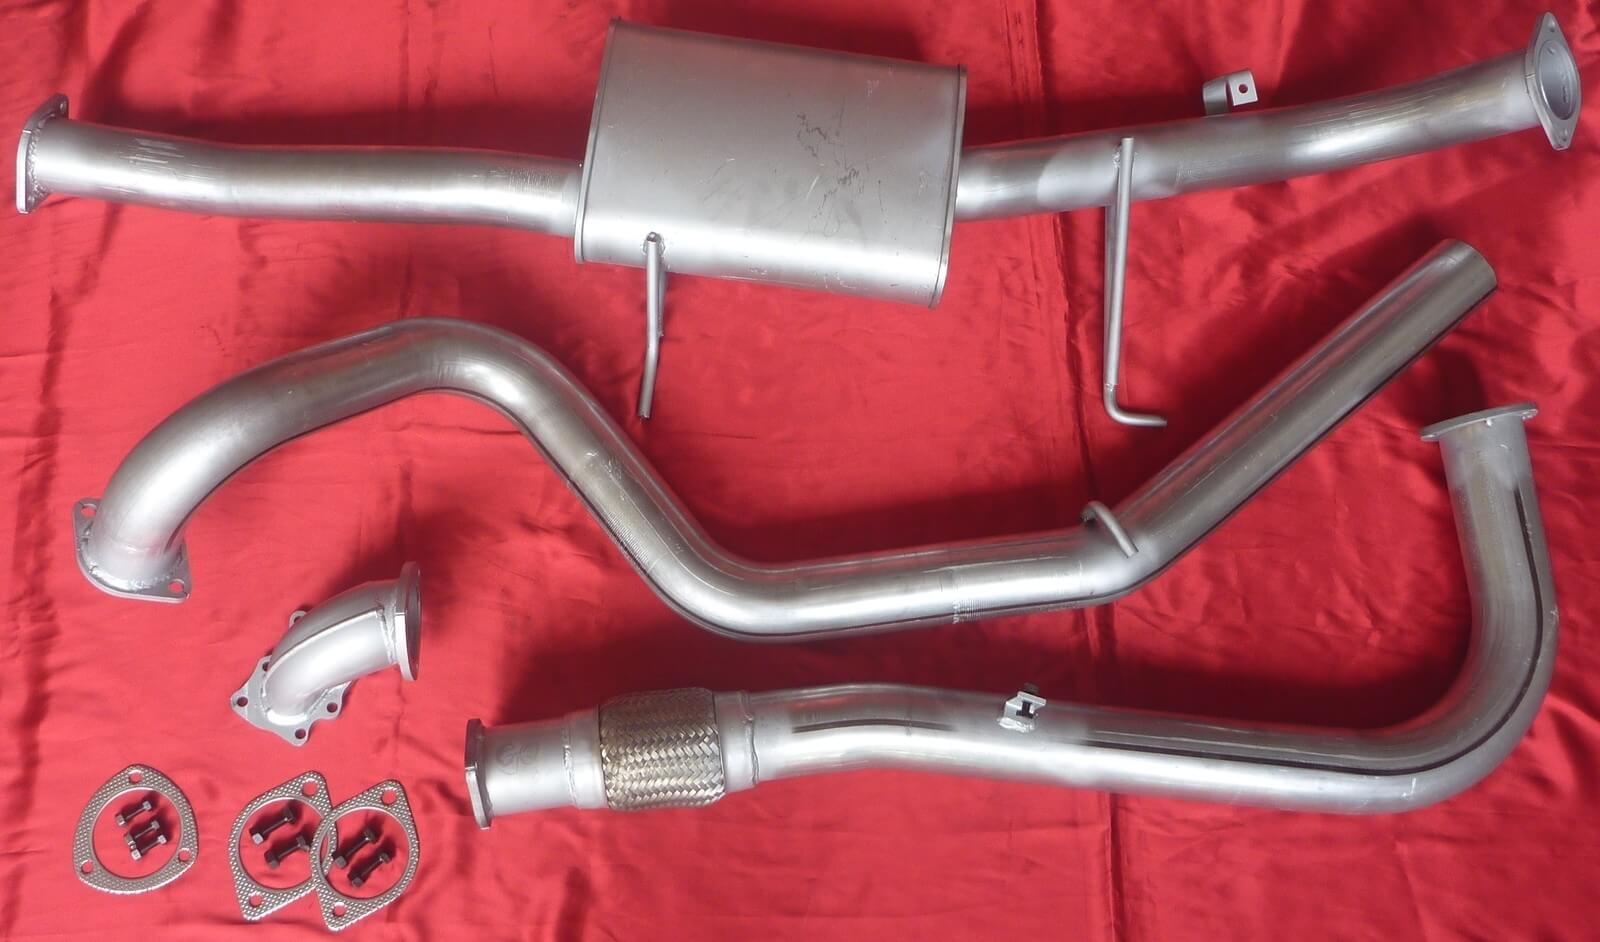 "Nissan Patrol GU Y61 4.2L Wagon 3"" Exhaust 4x4 Turbo Diesel 409 Stainless Steel 3 inch Turbo Back Exhaust System - Click to enlarge picture."